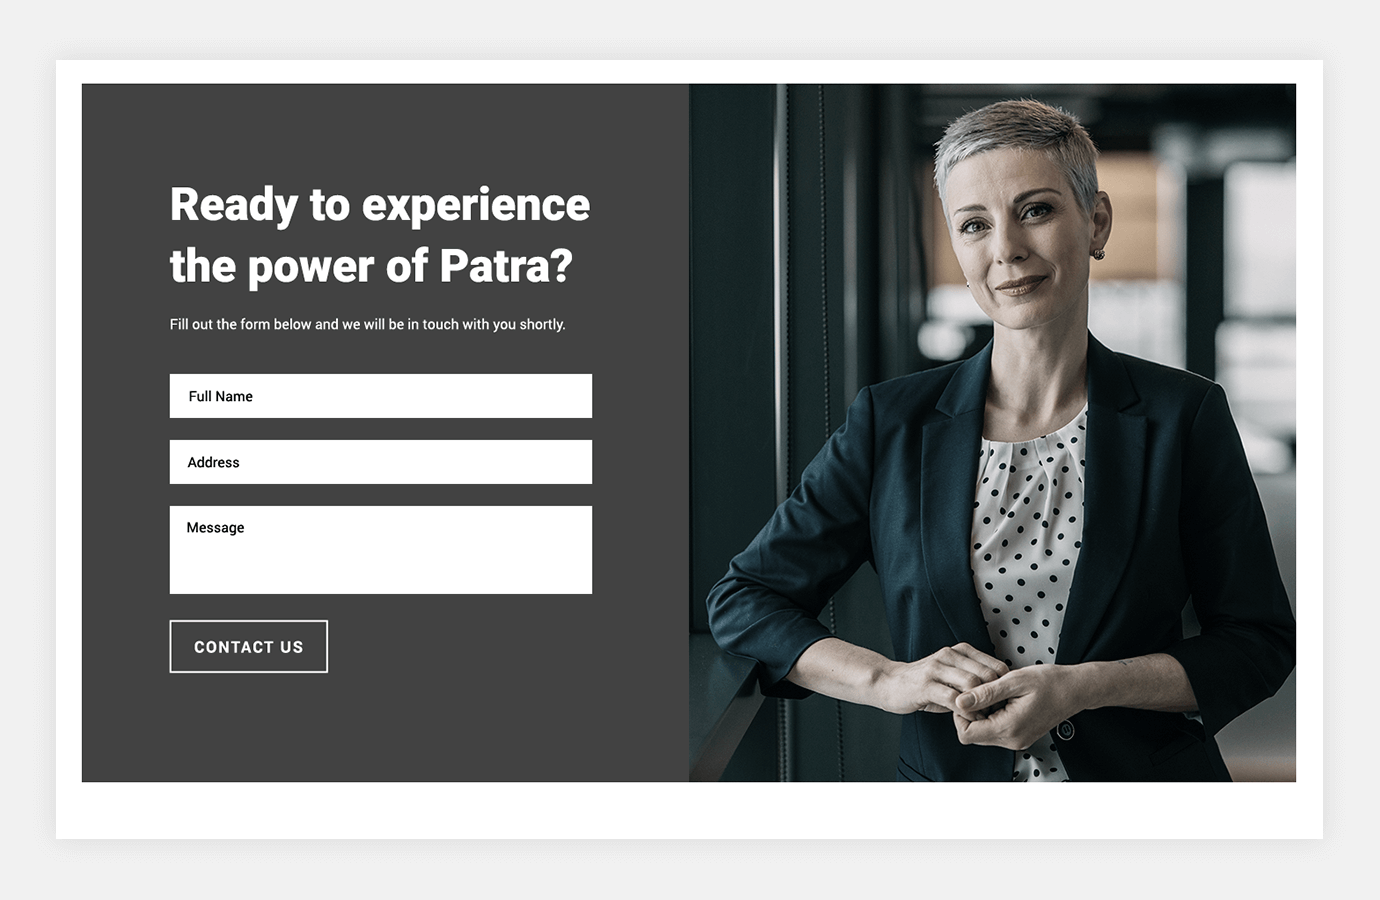 Screenshot of Patra website showing contact us form